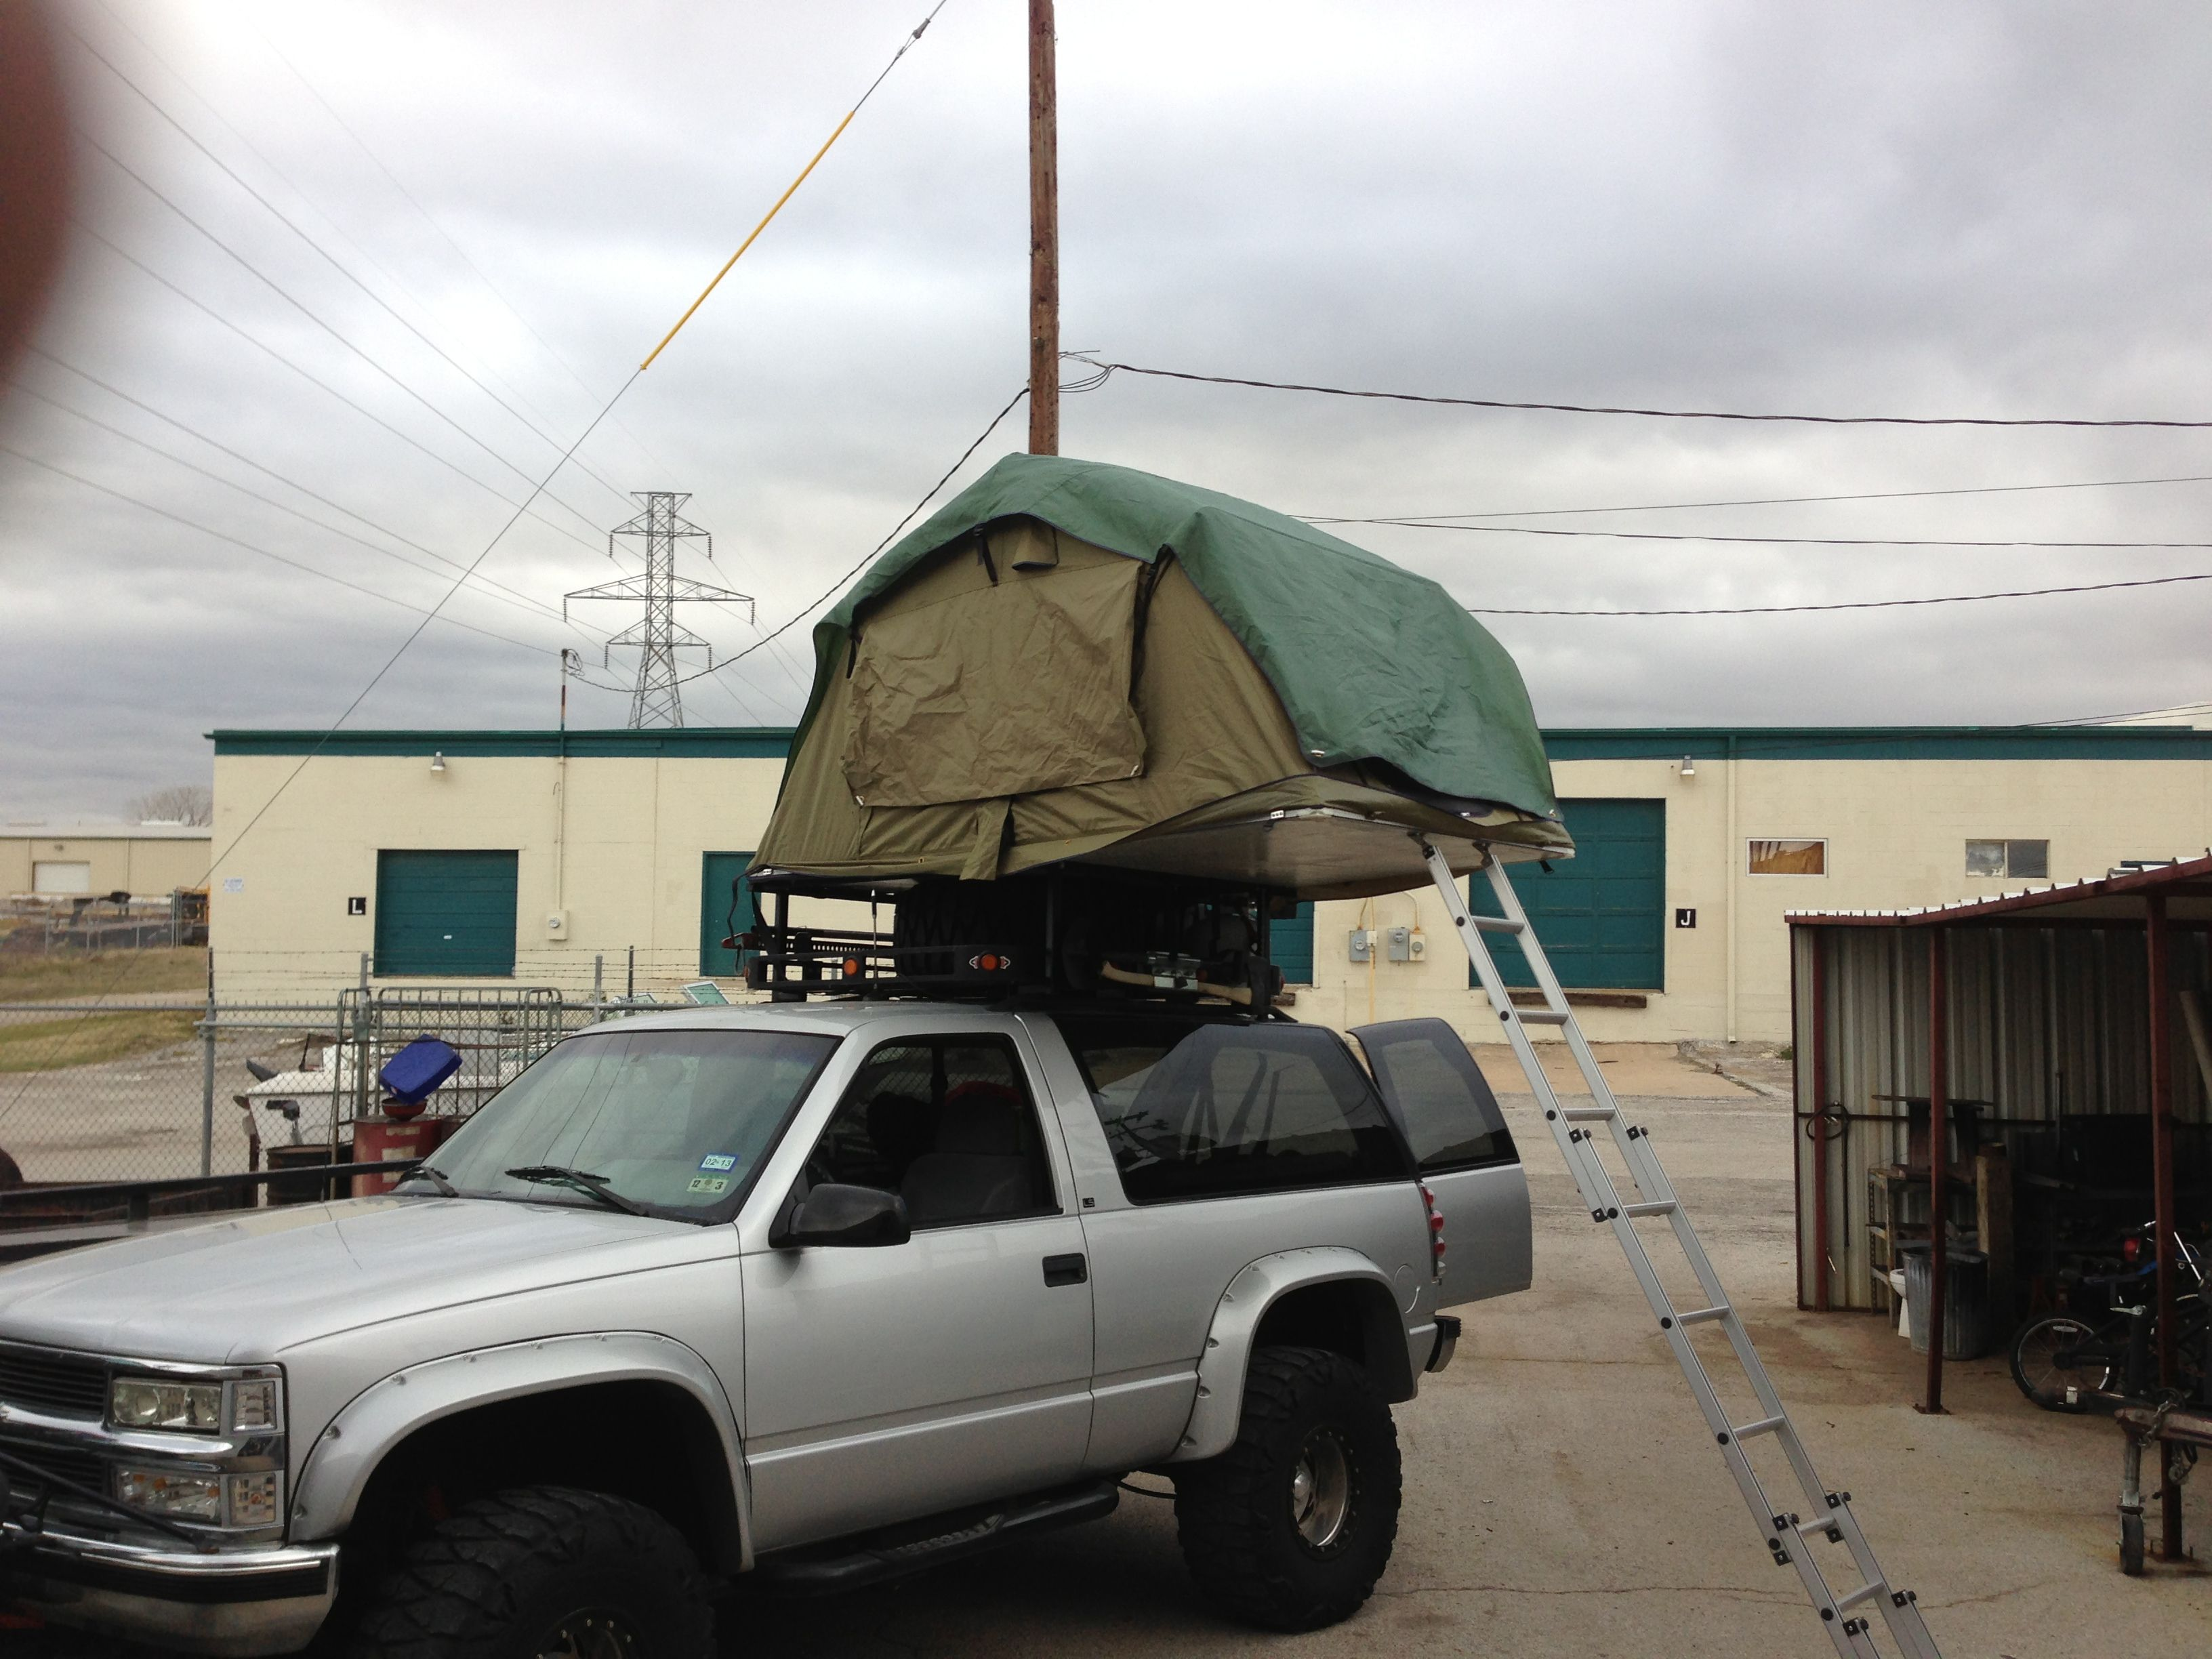 First text of newly mounted roof top tent! This is going to be the beginning & 210 best Roof Top Tents images on Pinterest | Offroad Truck ... memphite.com